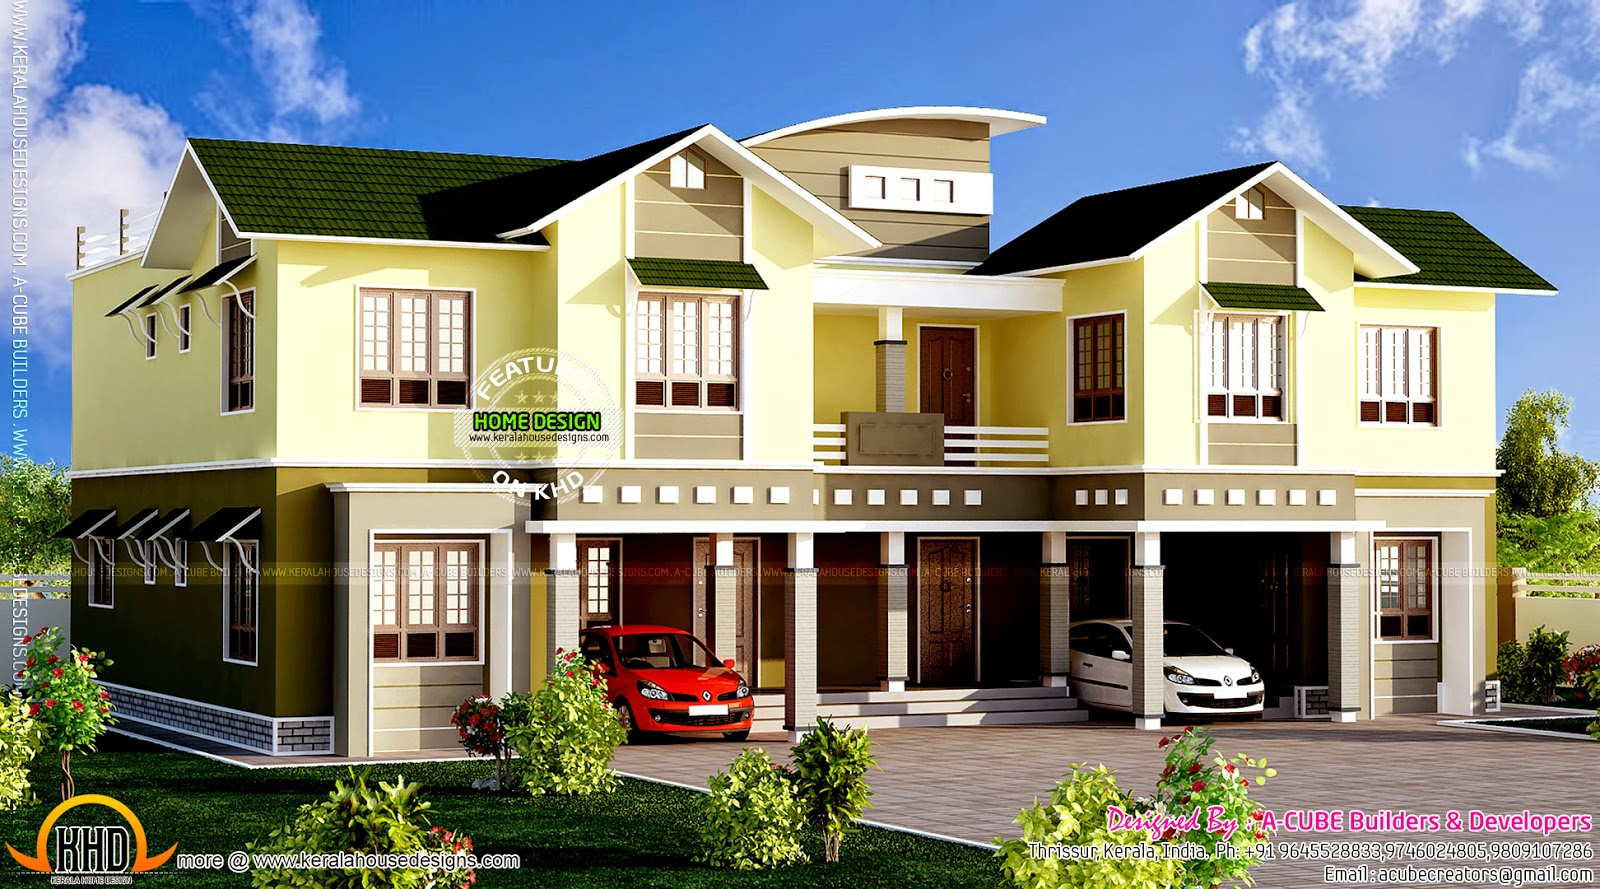 Luxury duplex home kerala home design and floor plans for Luxury duplex house plans